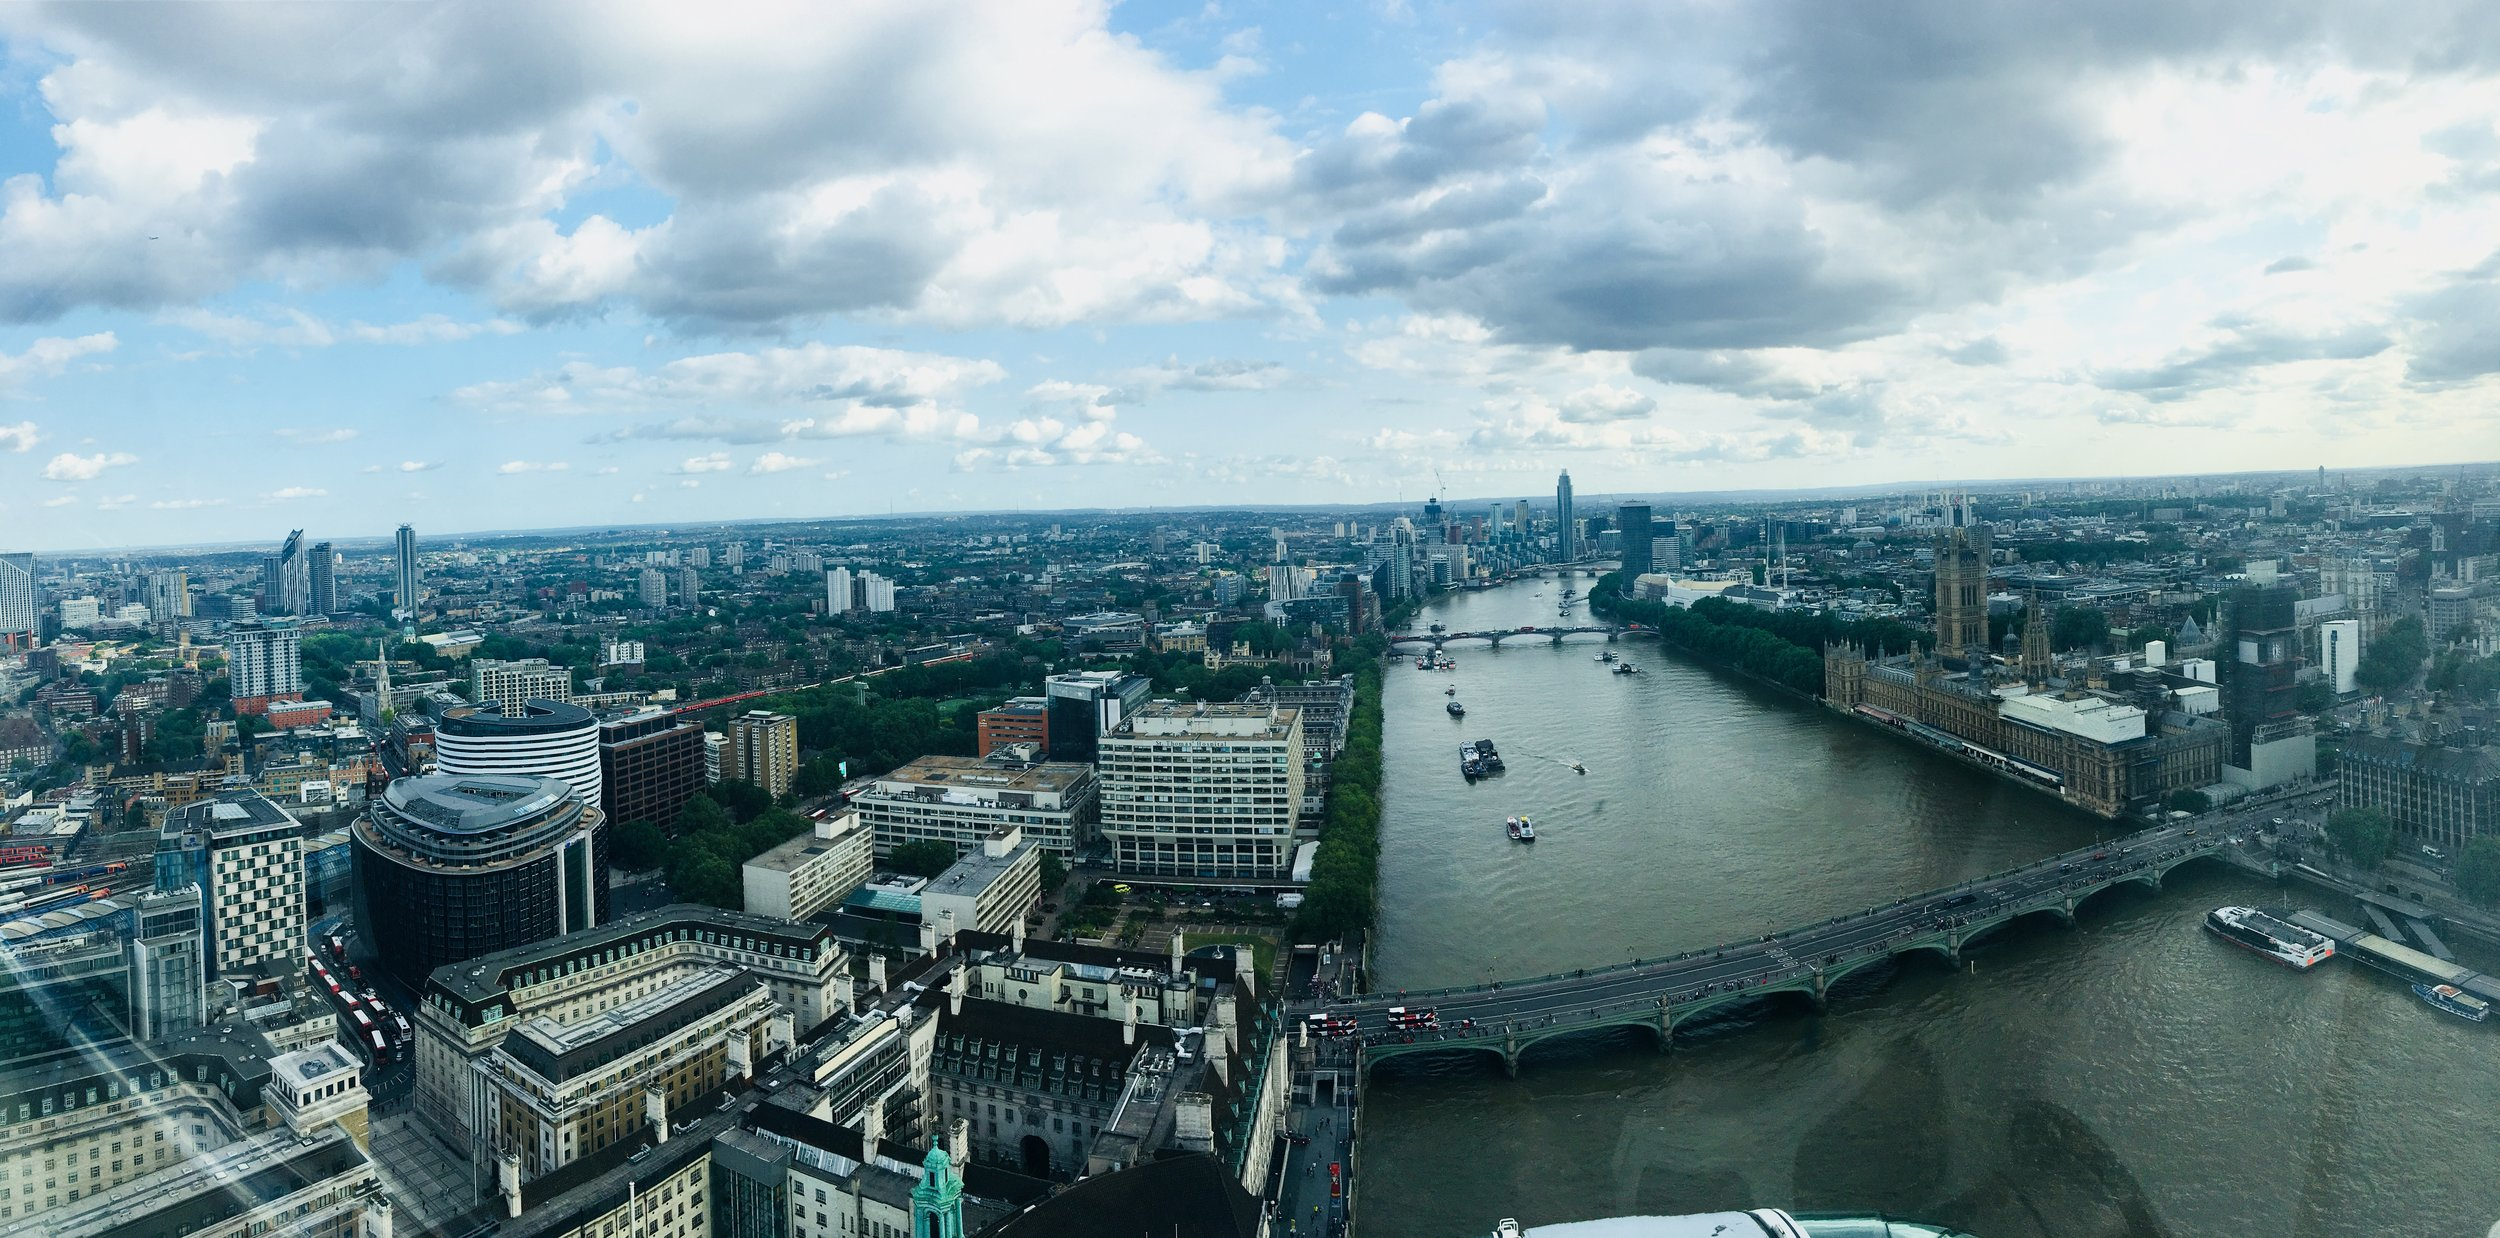 Panorama of the city from the top of the London Eye